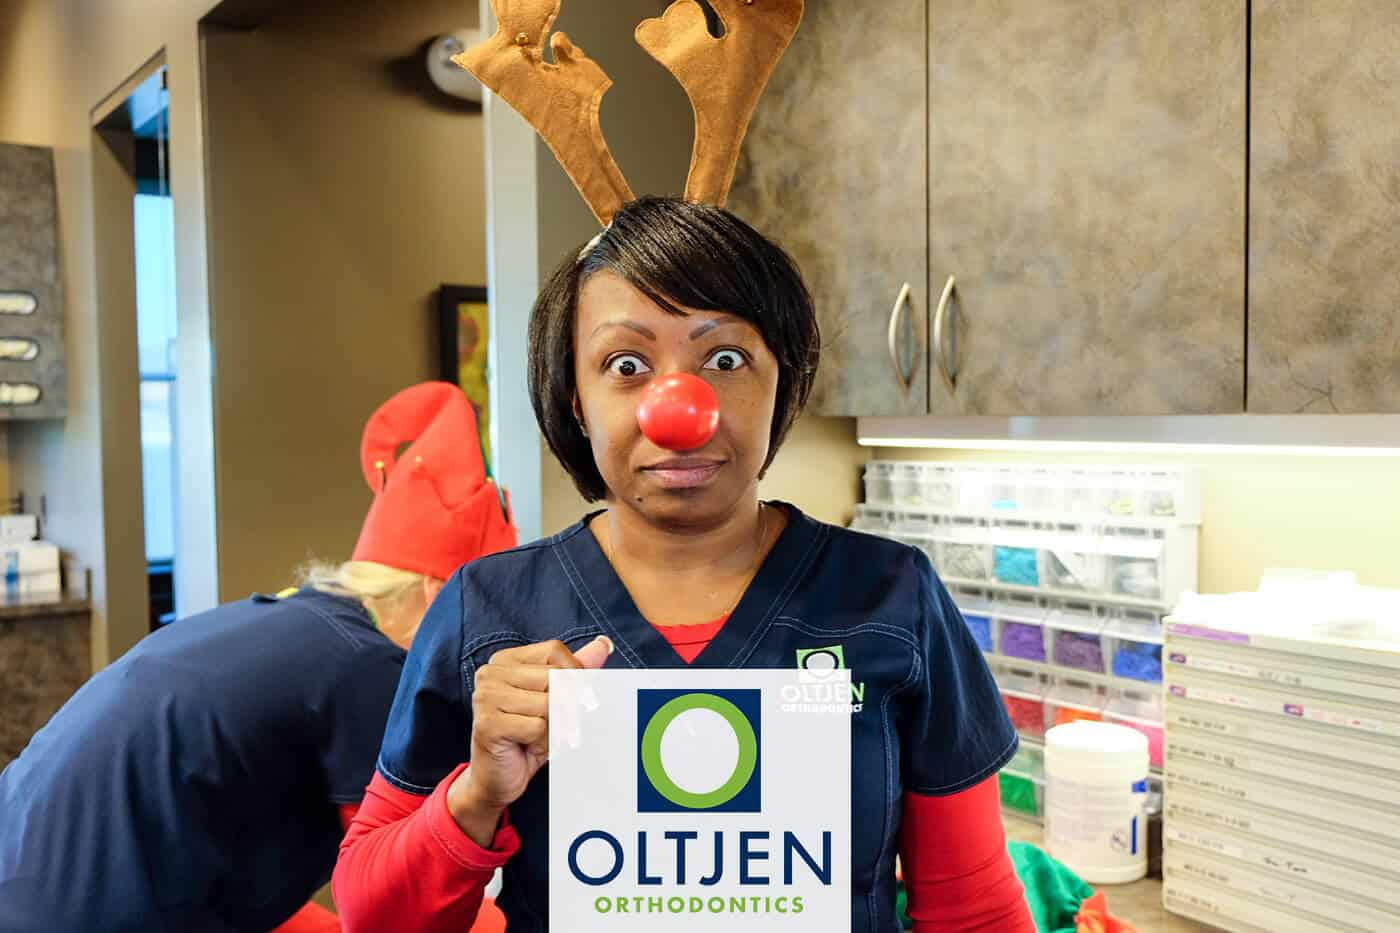 Oltjen-Orthodontics-Christmas-in-July-6-of-10